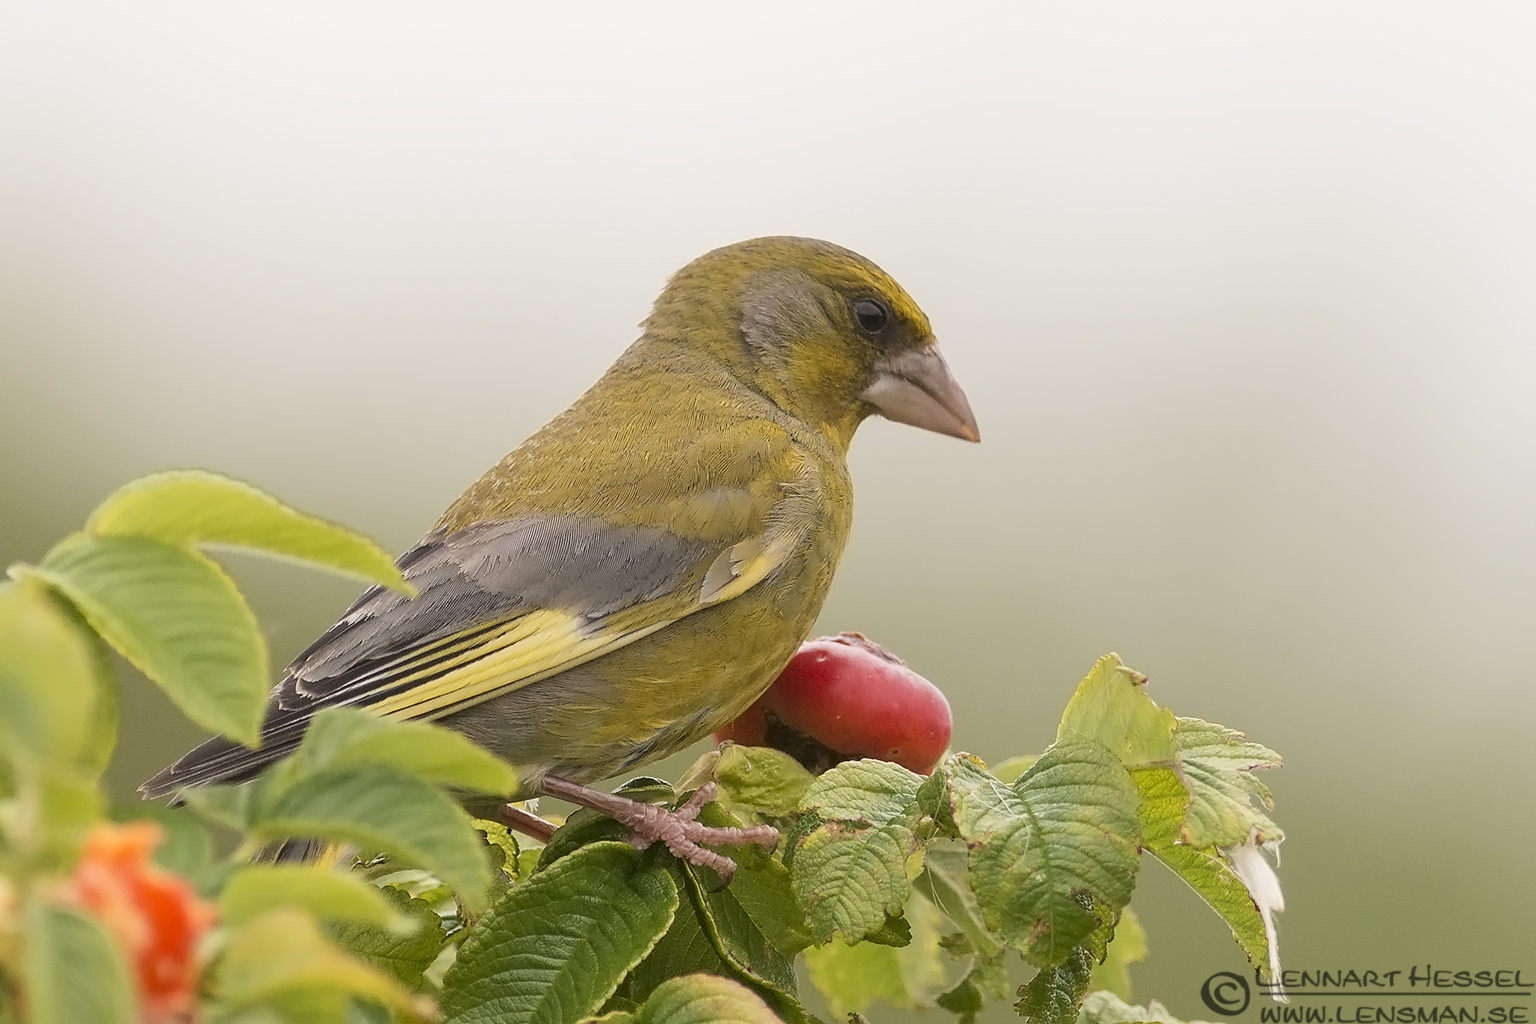 Greenfinch picture